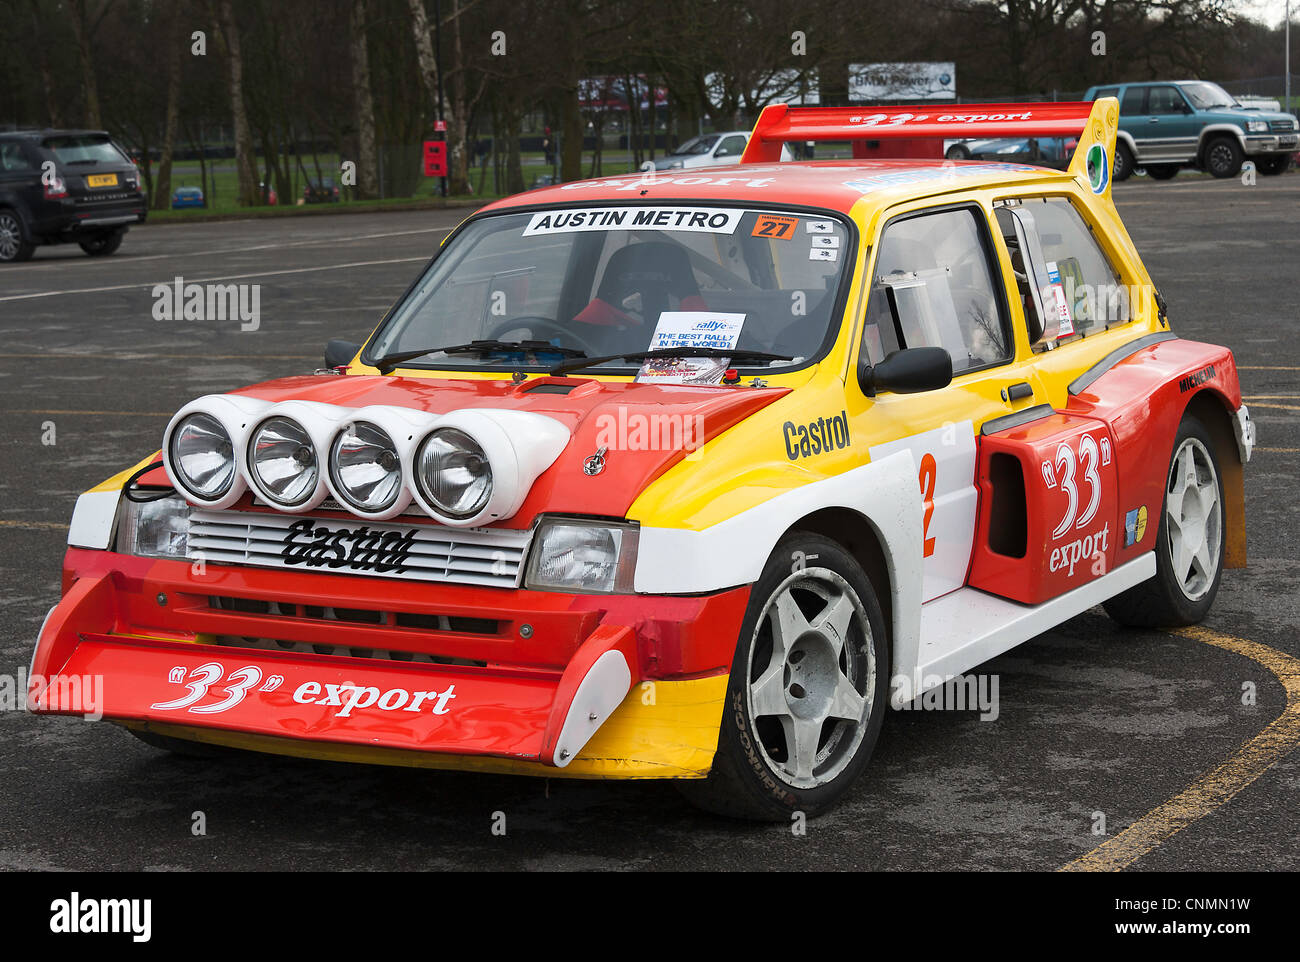 Mini Racing Car Stock Photos & Mini Racing Car Stock Images - Alamy